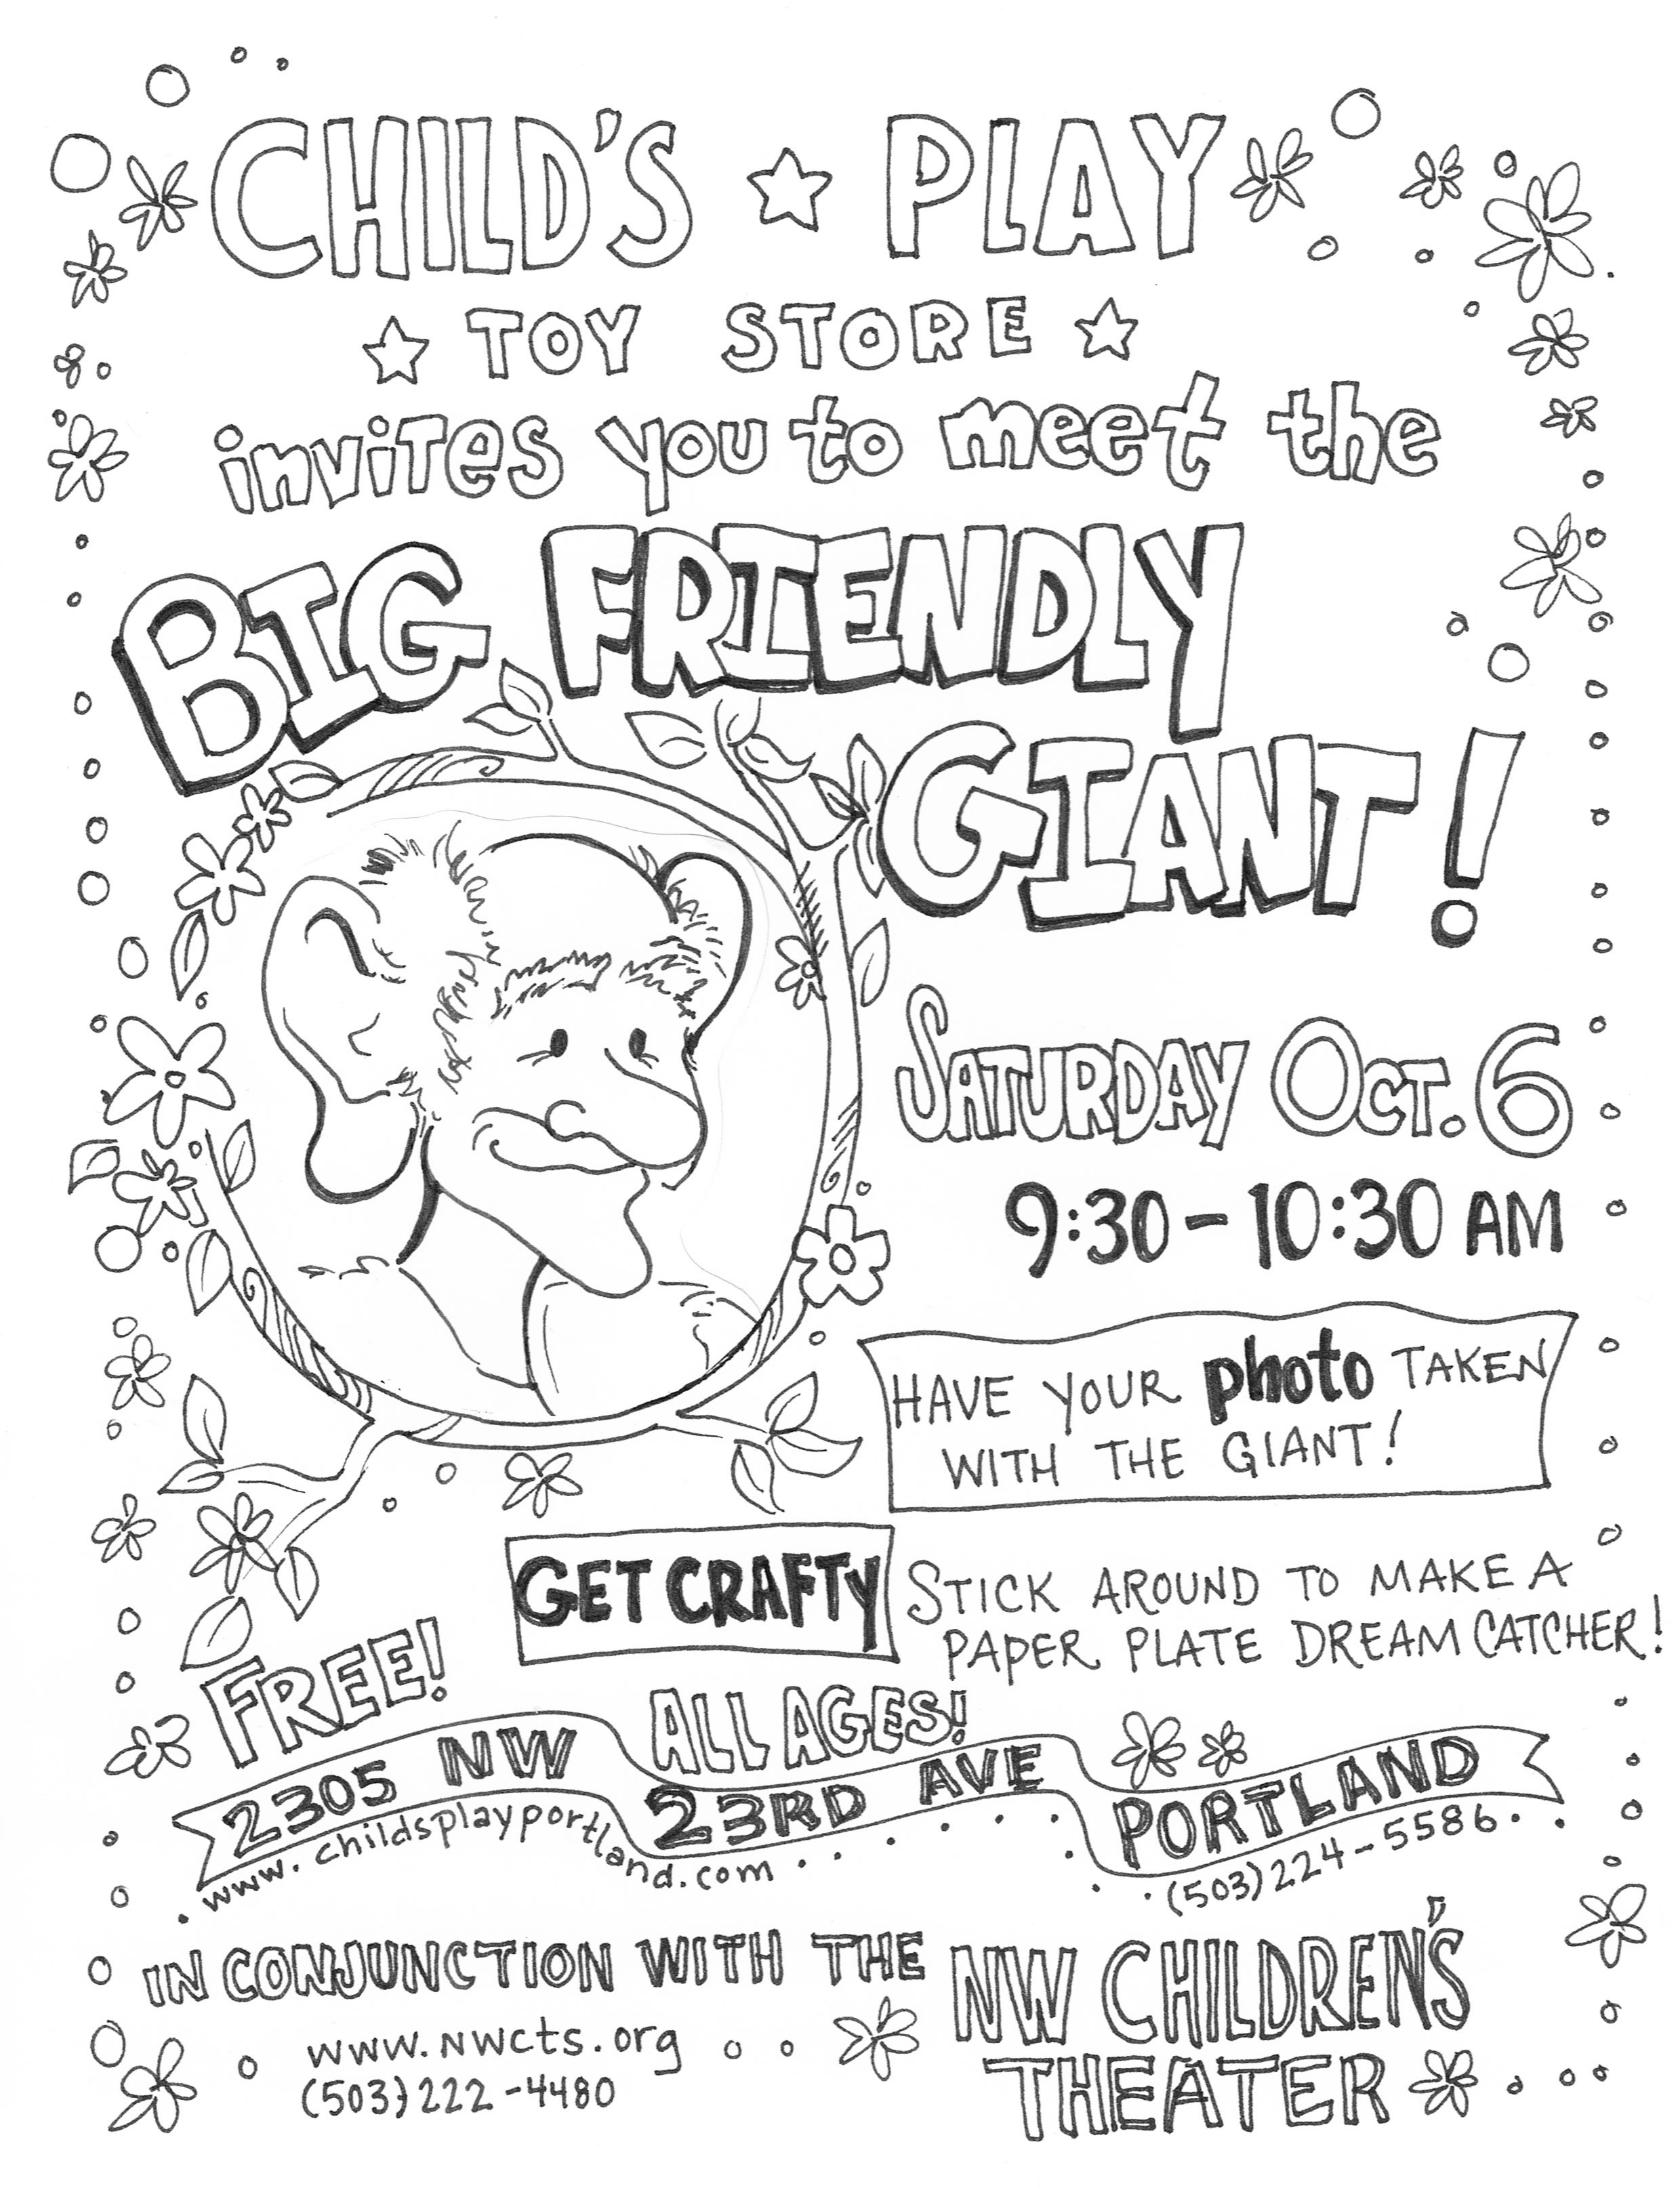 The Bfg Big Friendly Giant Coloring Page Sketch Coloring Page